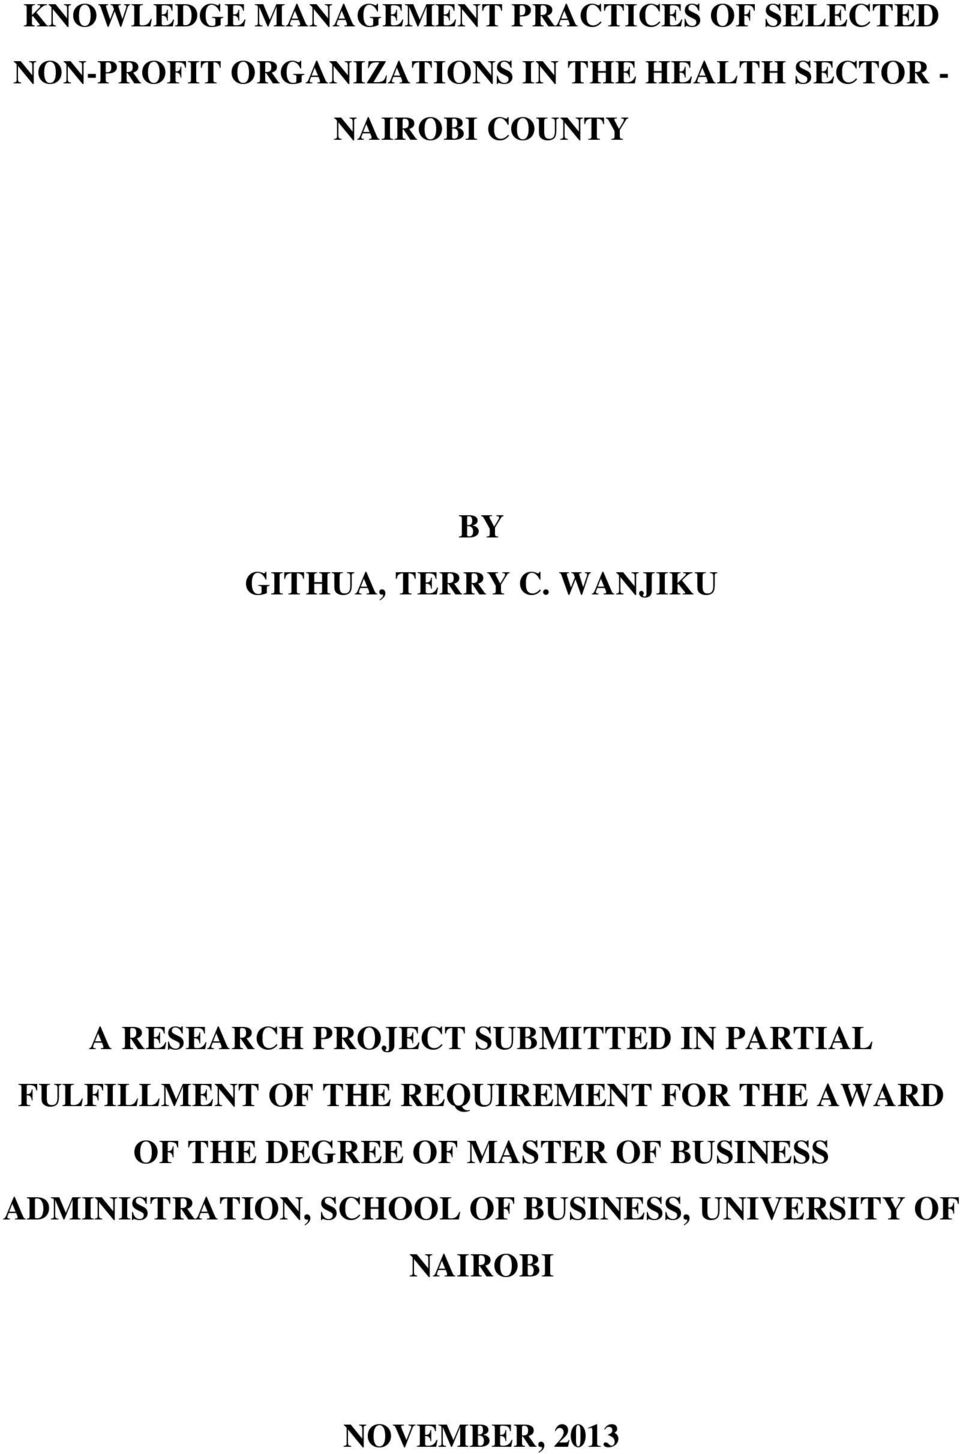 WANJIKU A RESEARCH PROJECT SUBMITTED IN PARTIAL FULFILLMENT OF THE REQUIREMENT